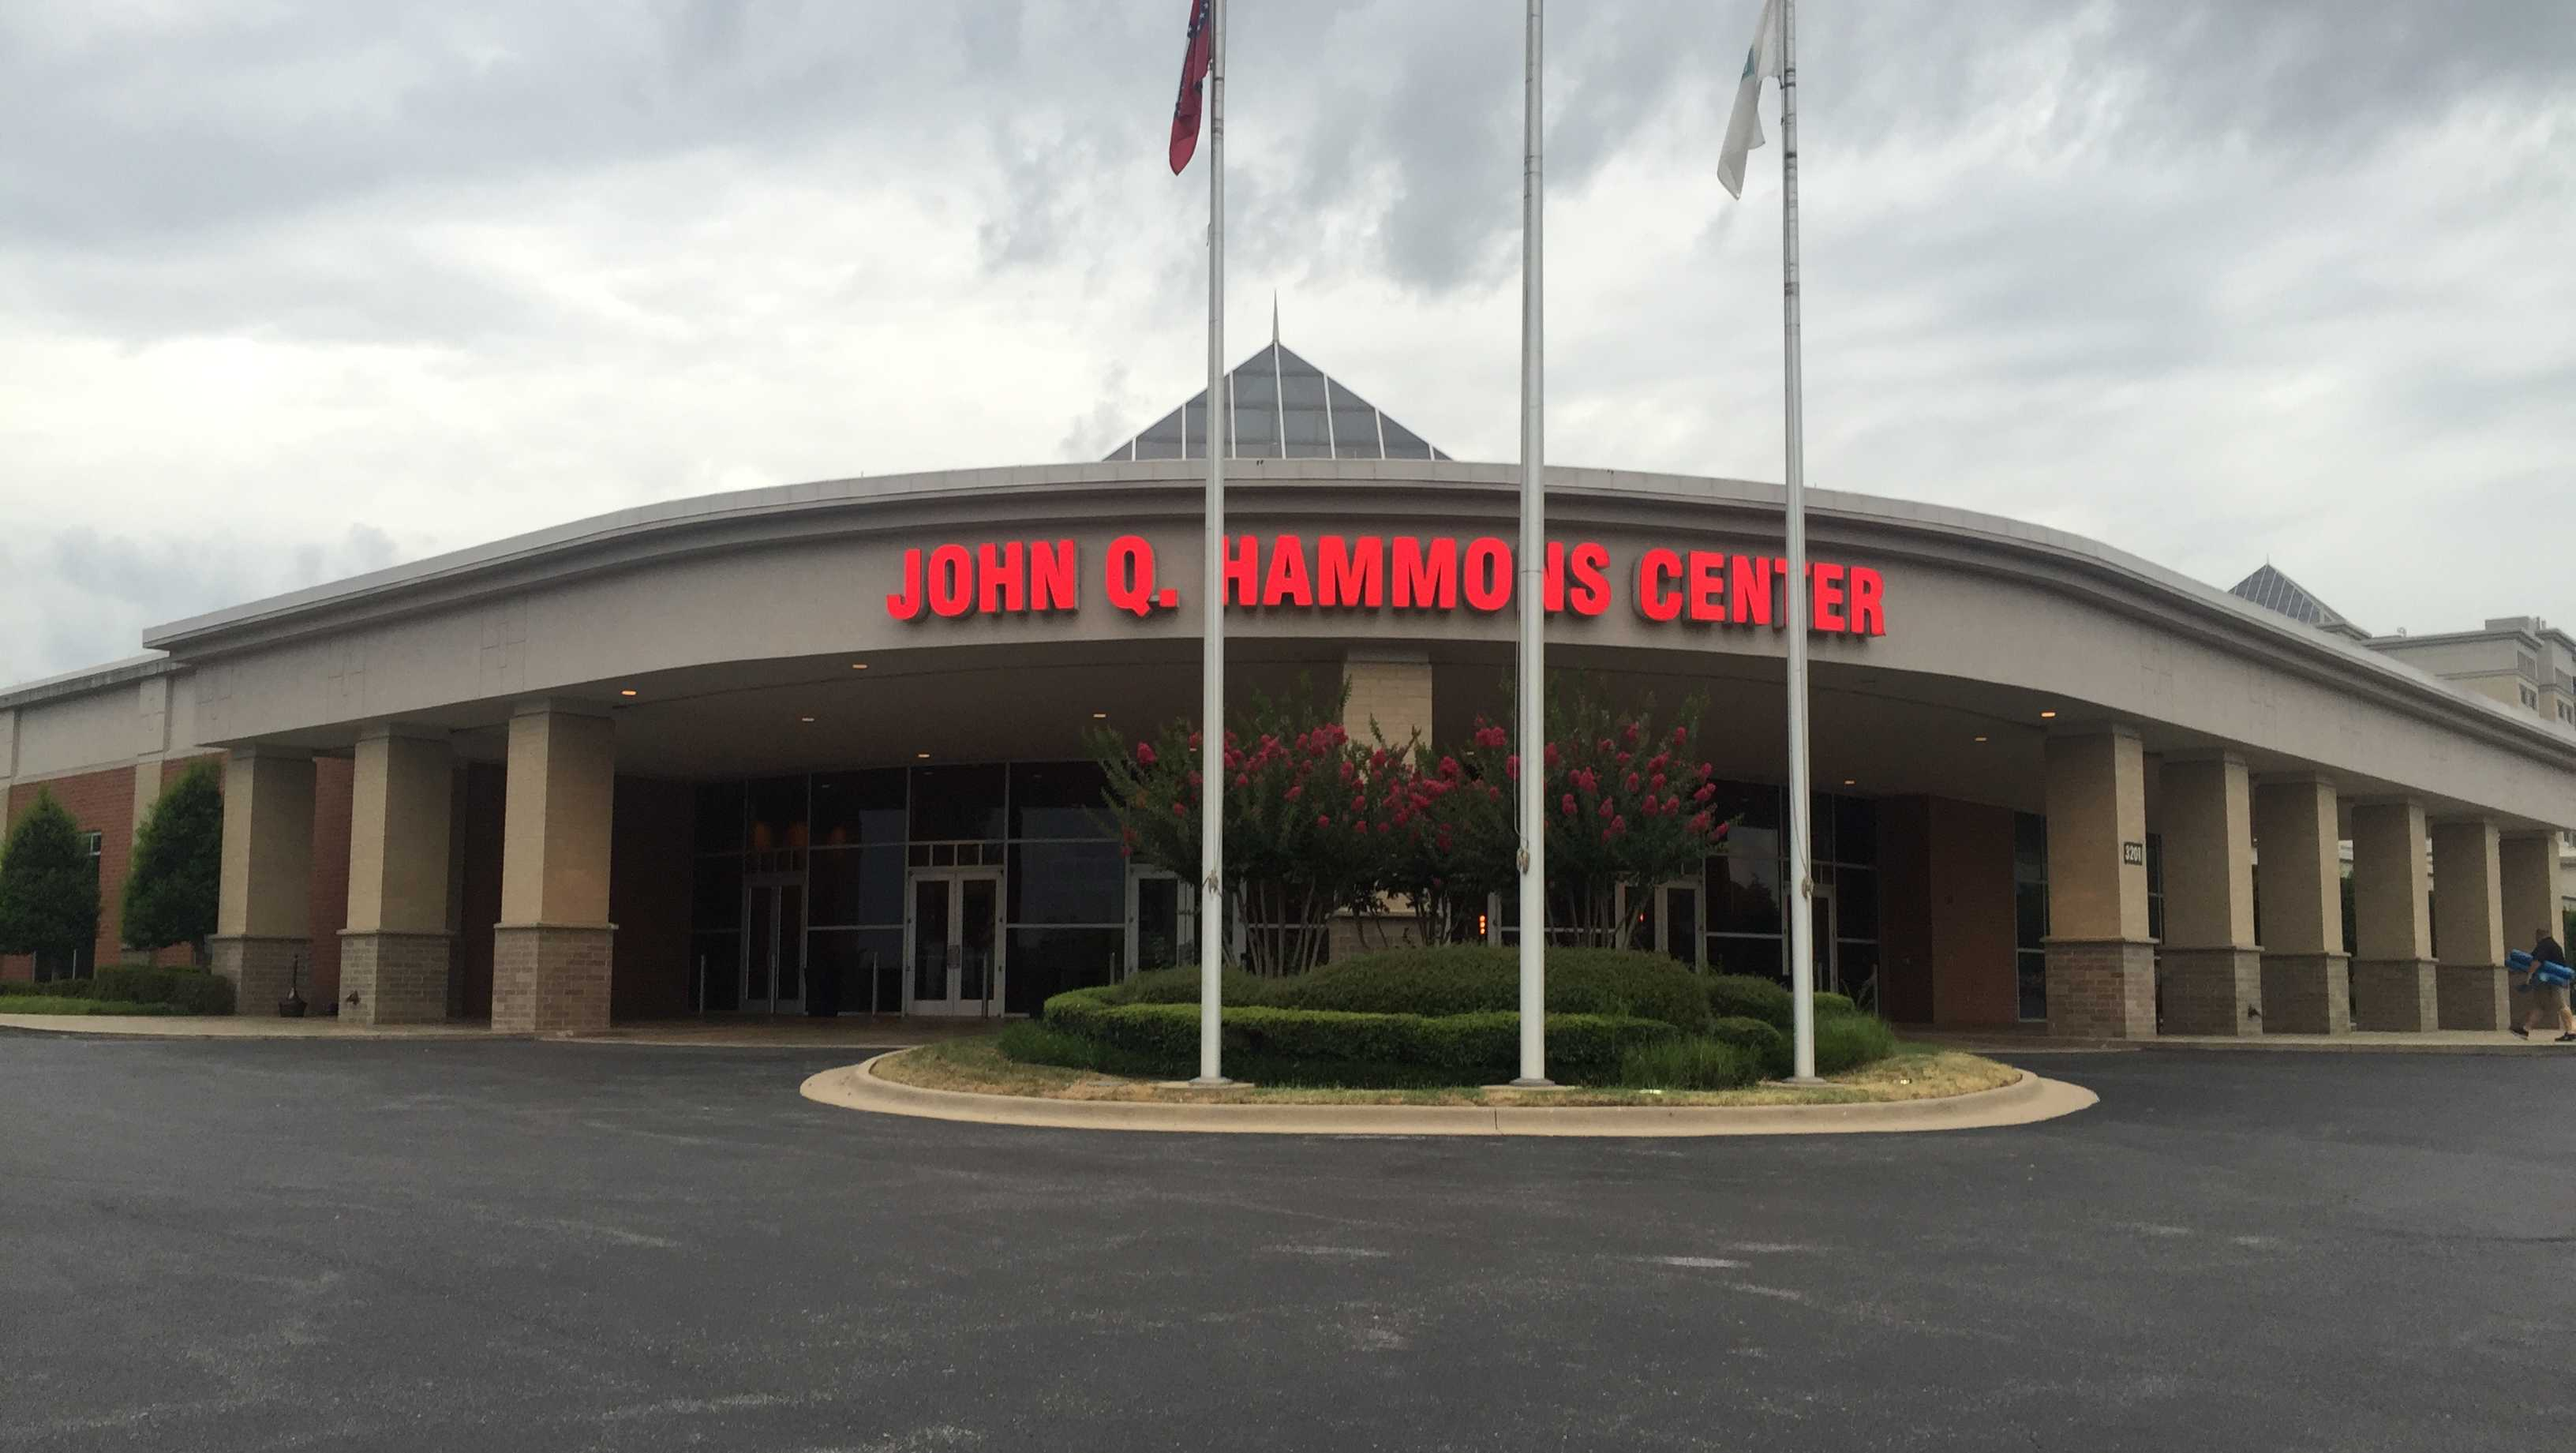 John Q. Hammons Center